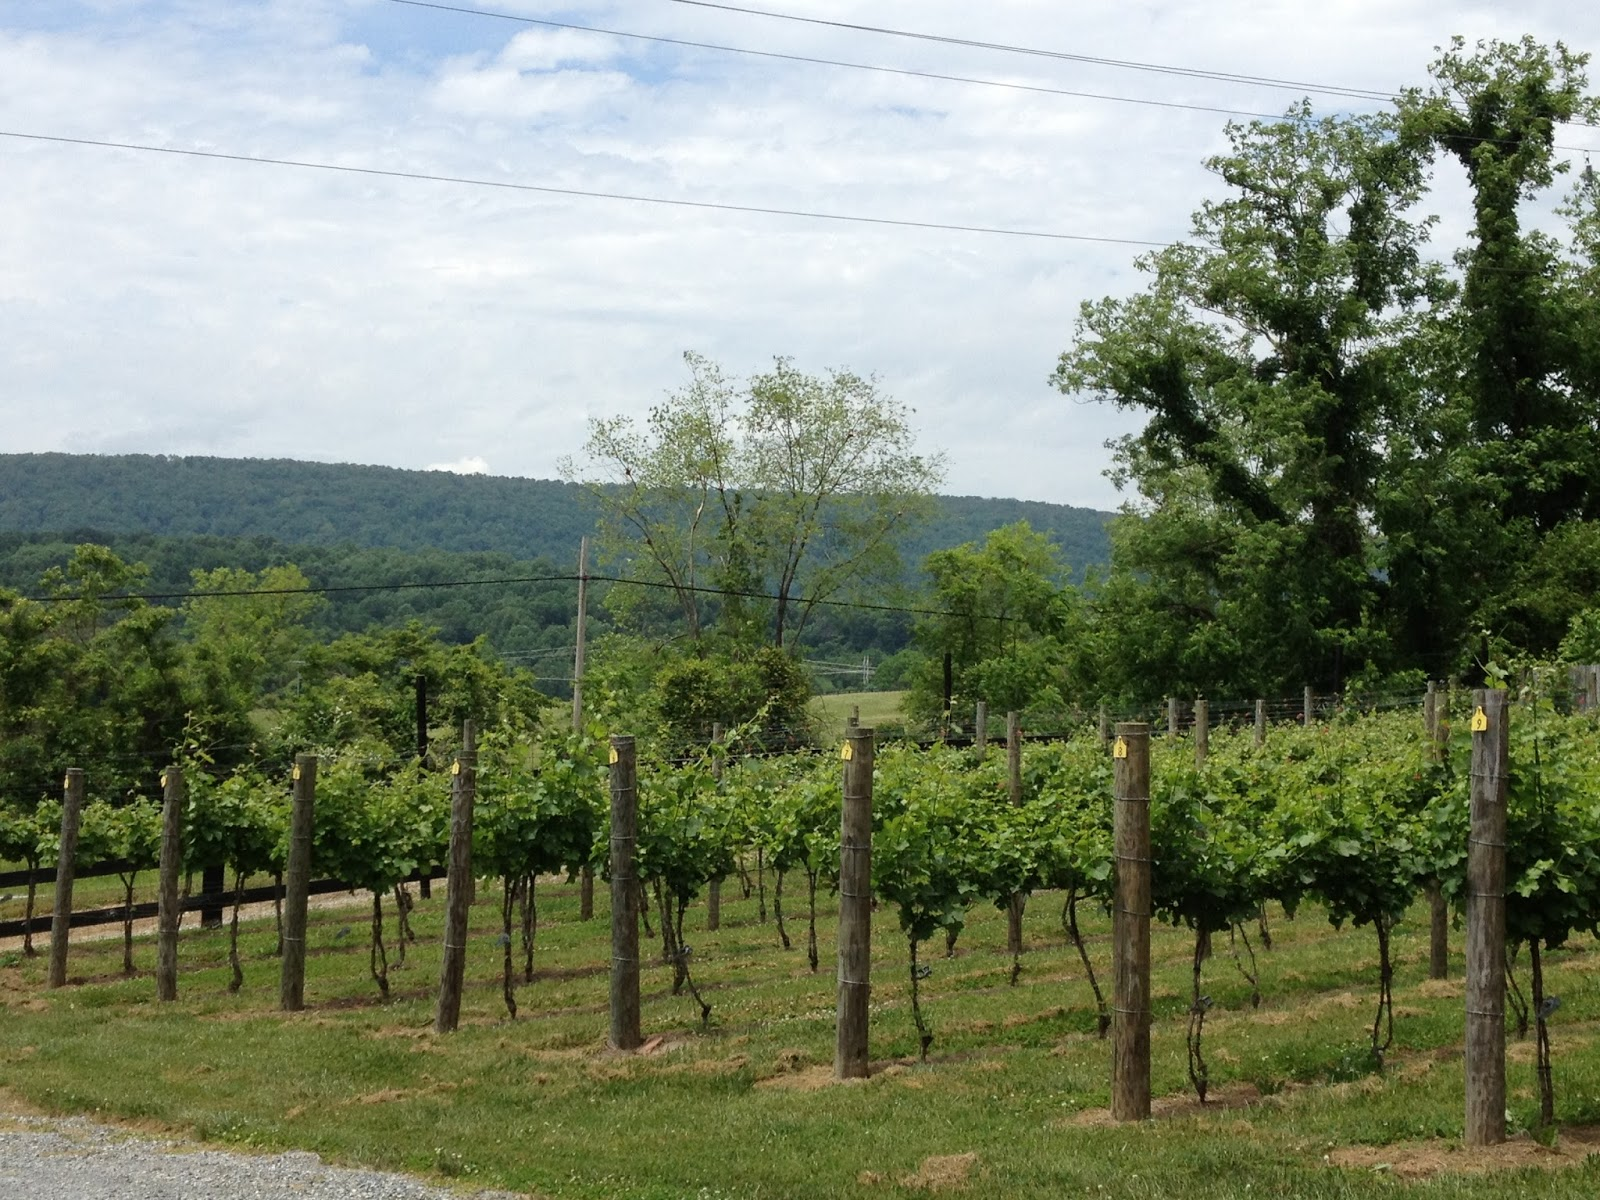 As much as I love some of the larger Virginia vineyards small family-owned vineyards will always have a special place in my heart. & At the Lamppost: Cardamon Family Vineyards